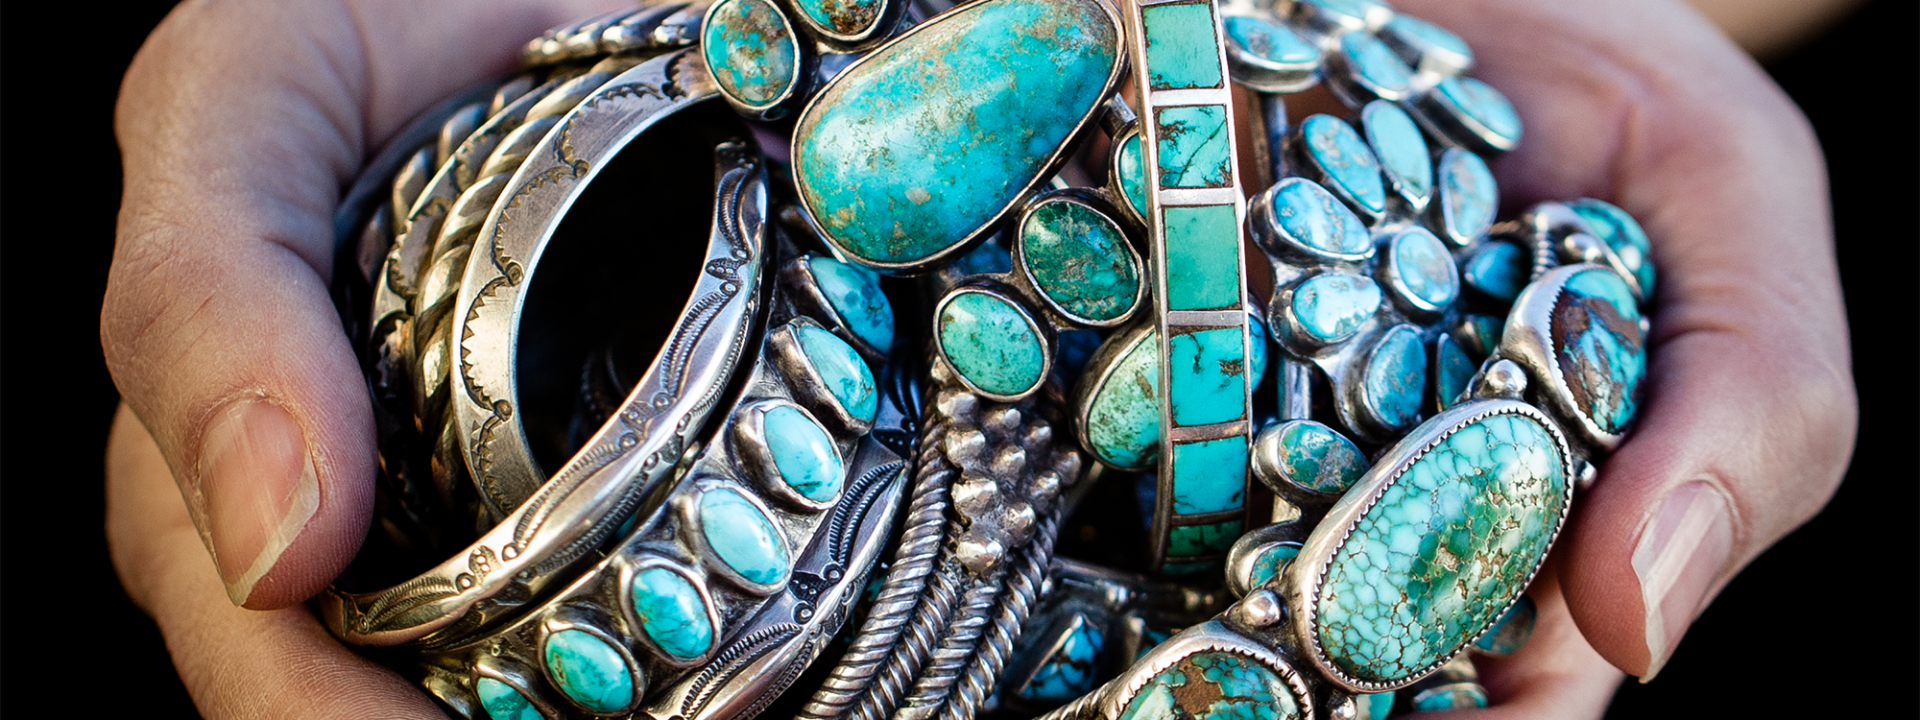 Turquoise in hands